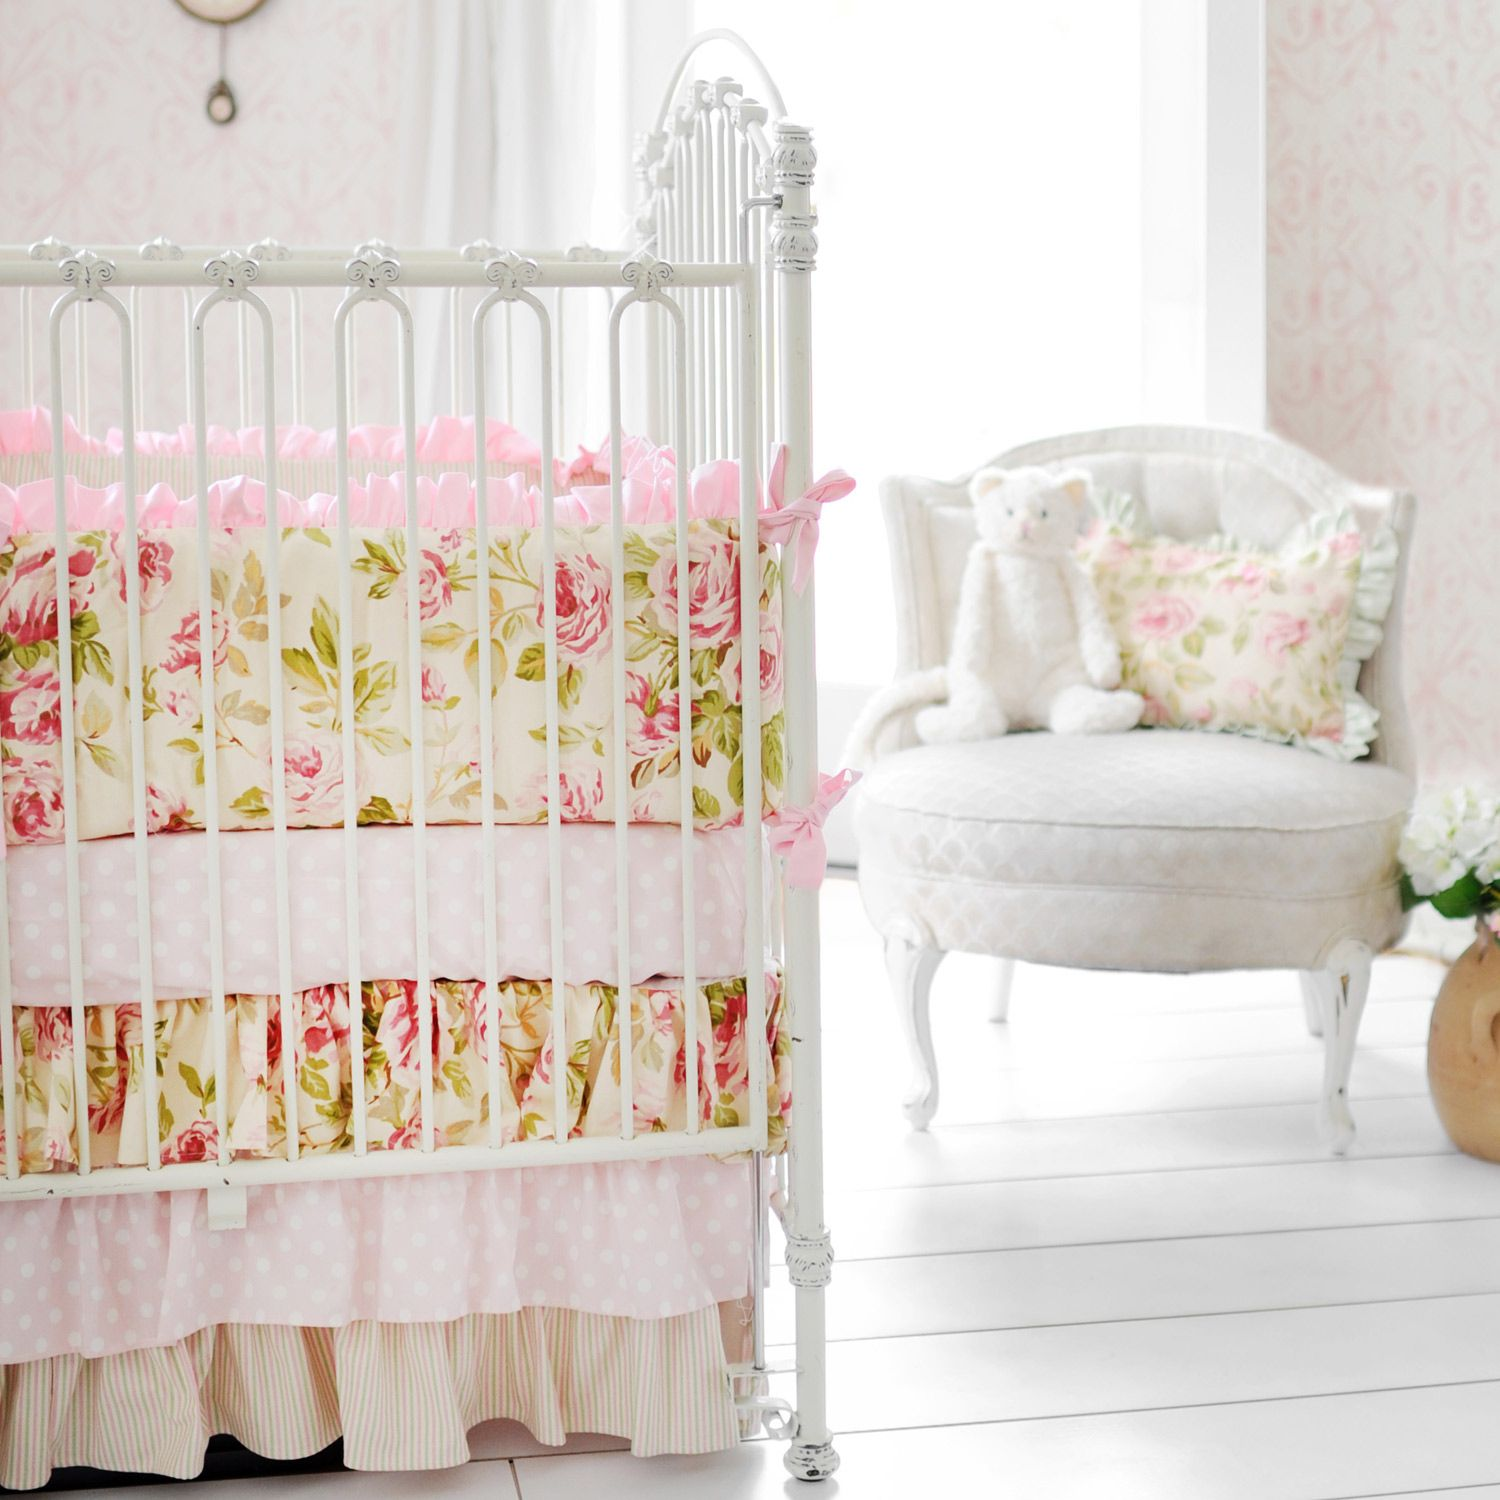 Full Crib Bedding Sets New Arrivals Crib Bedding In Full Bloom Layla Grayce Ember S